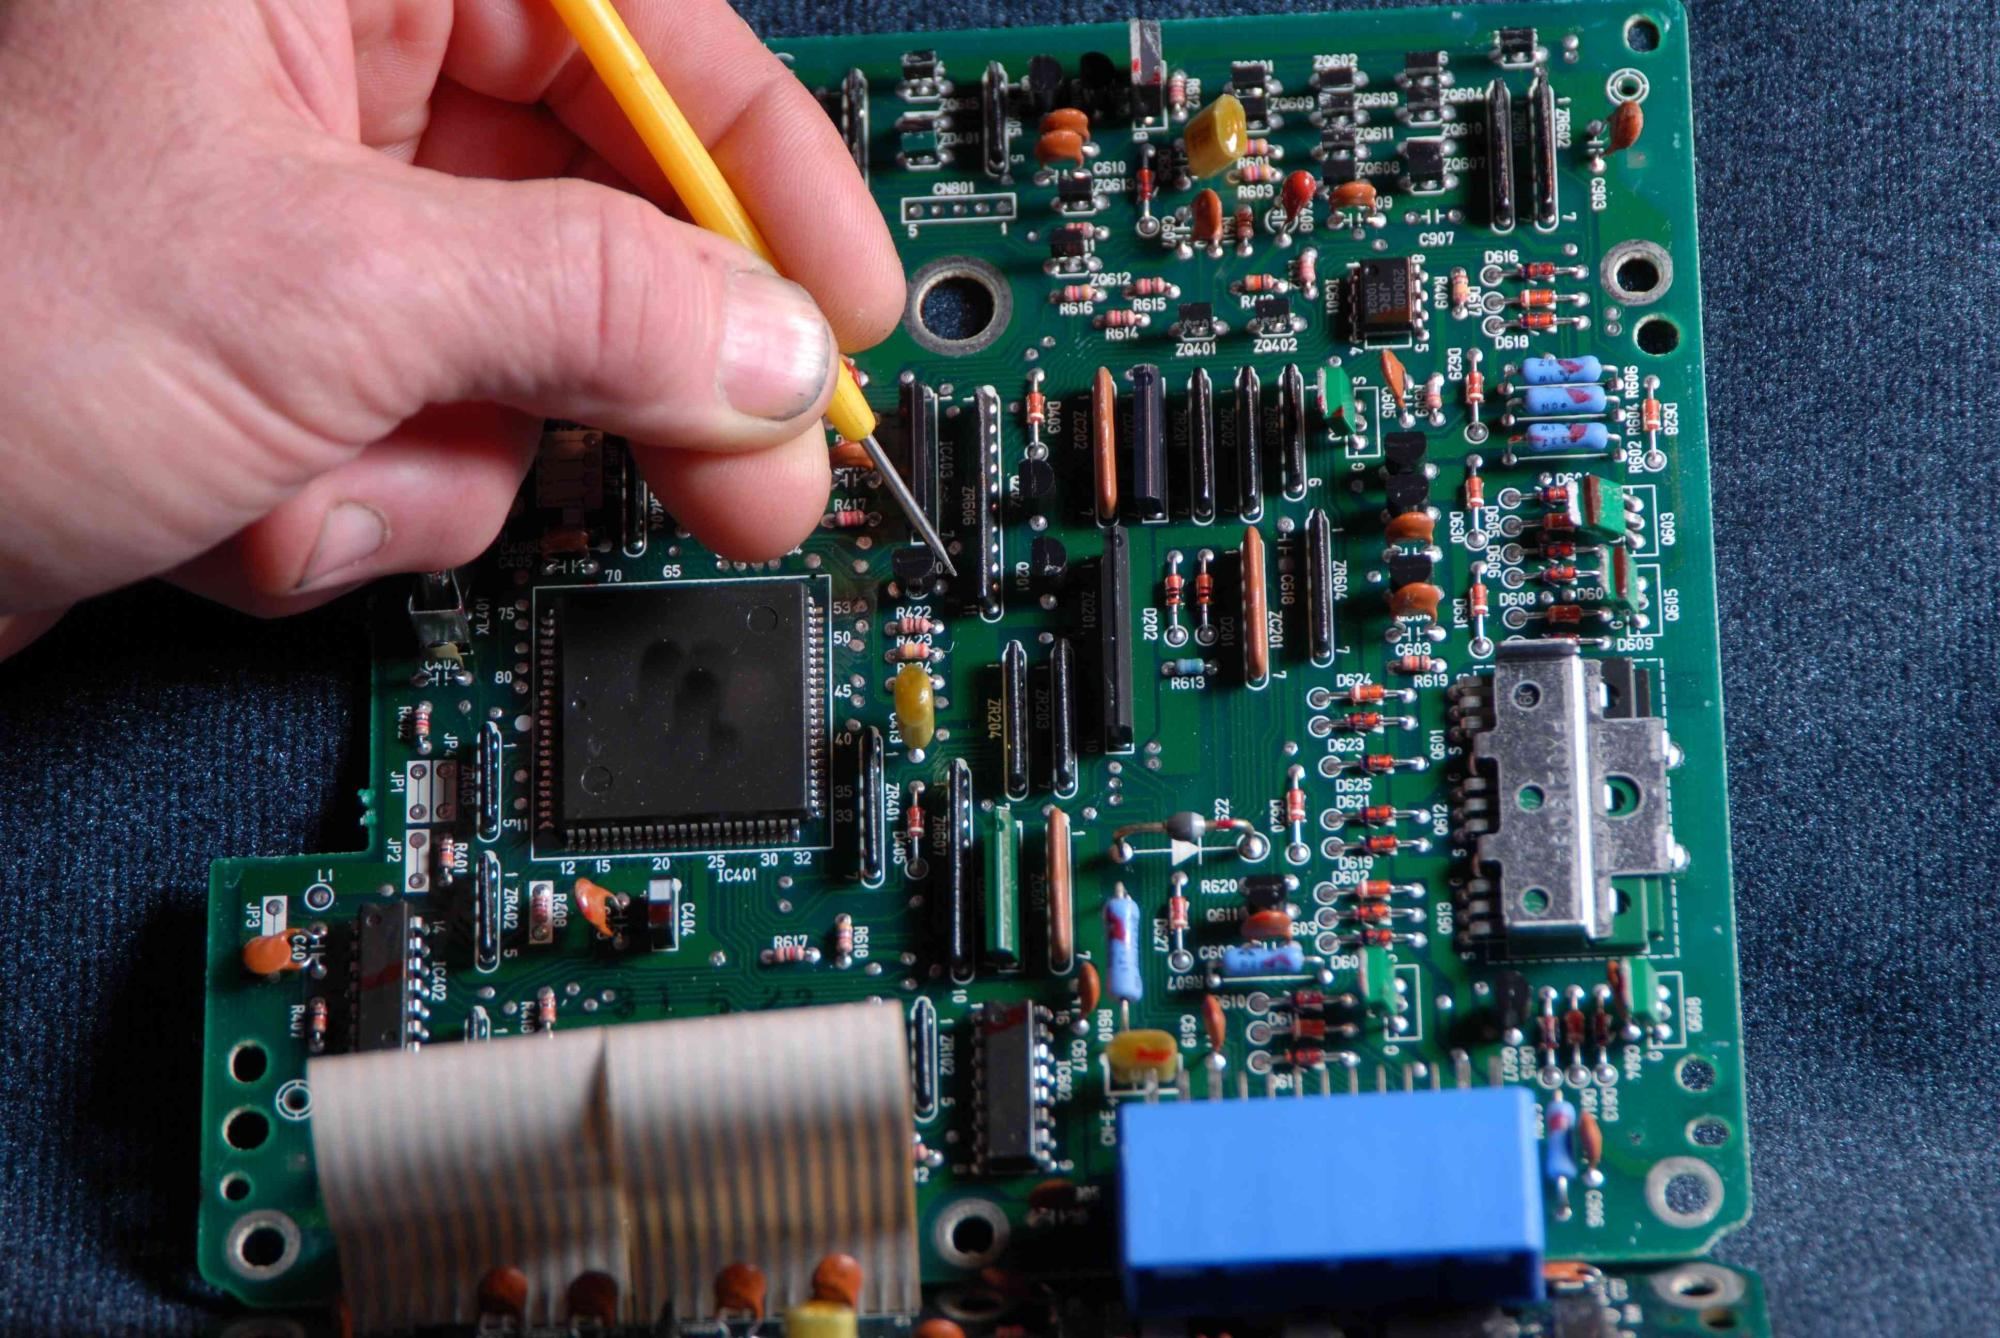 Manufacturers Rep Services Electronic Circuit Board Repair Field Service About Our Company